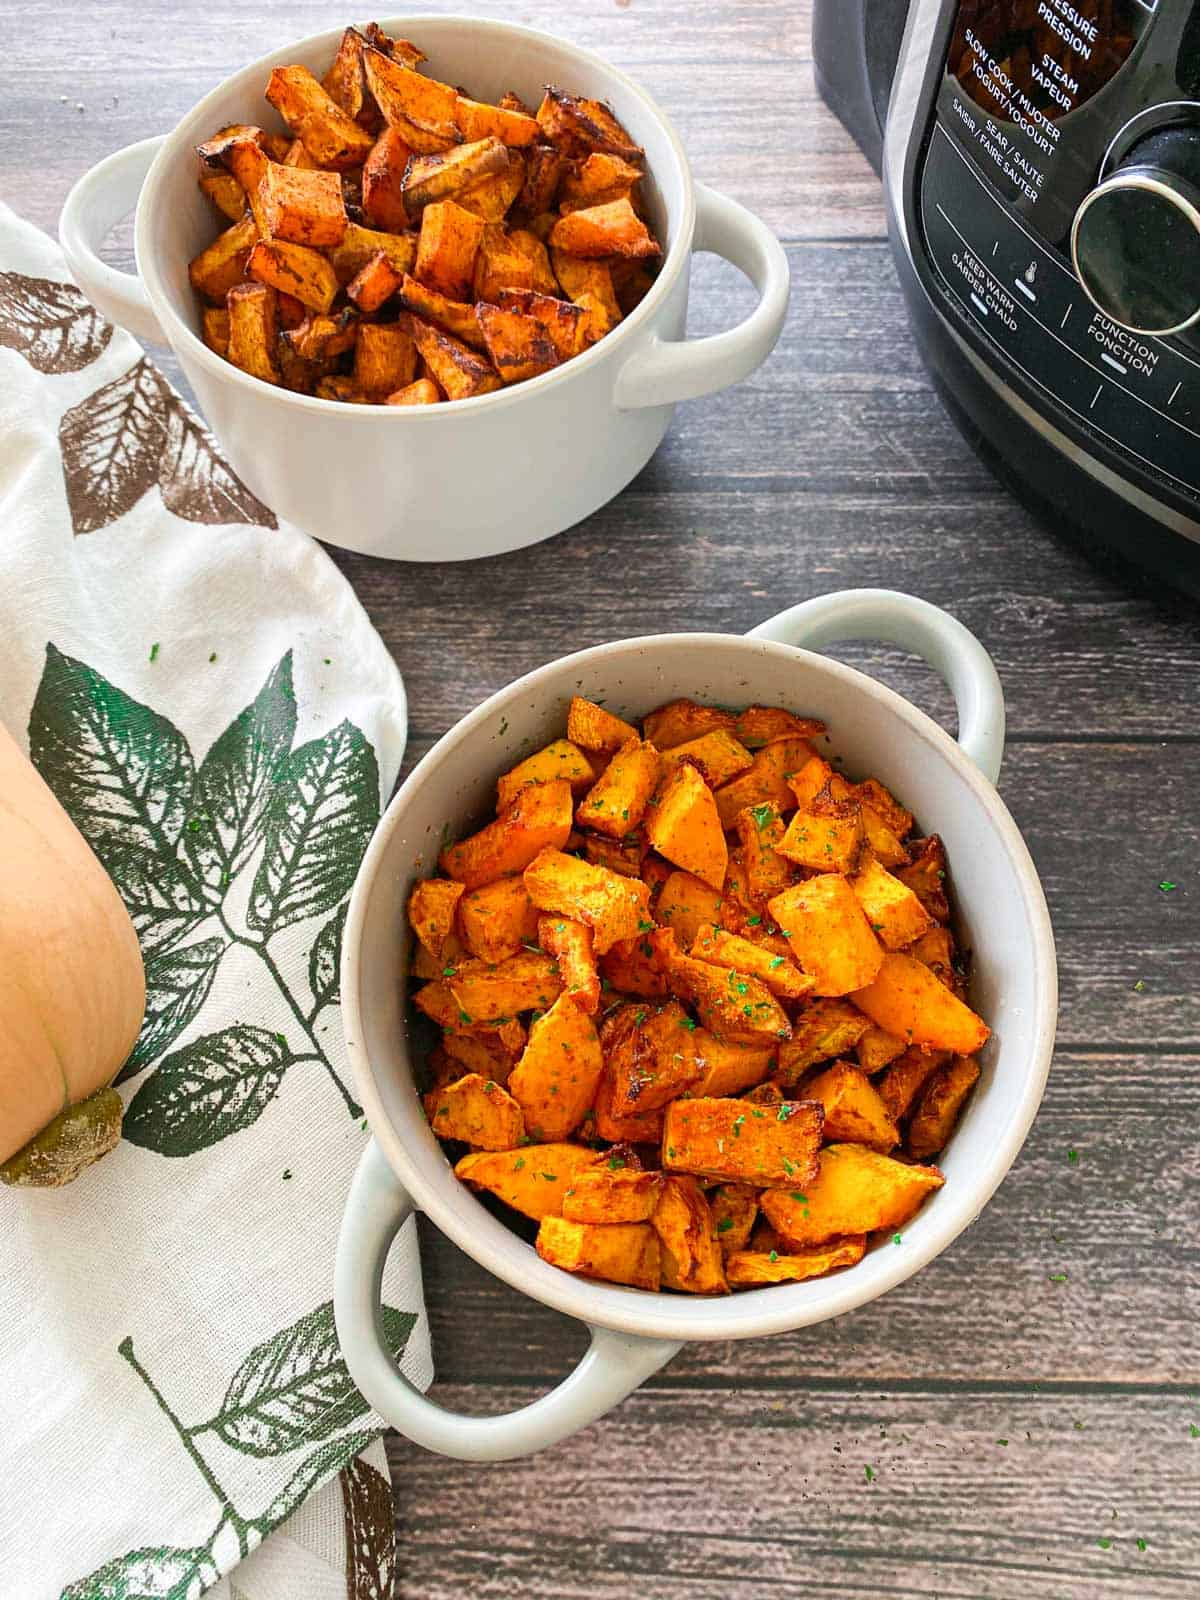 Two bowls of air fried butternut squash with air fryer in the background.